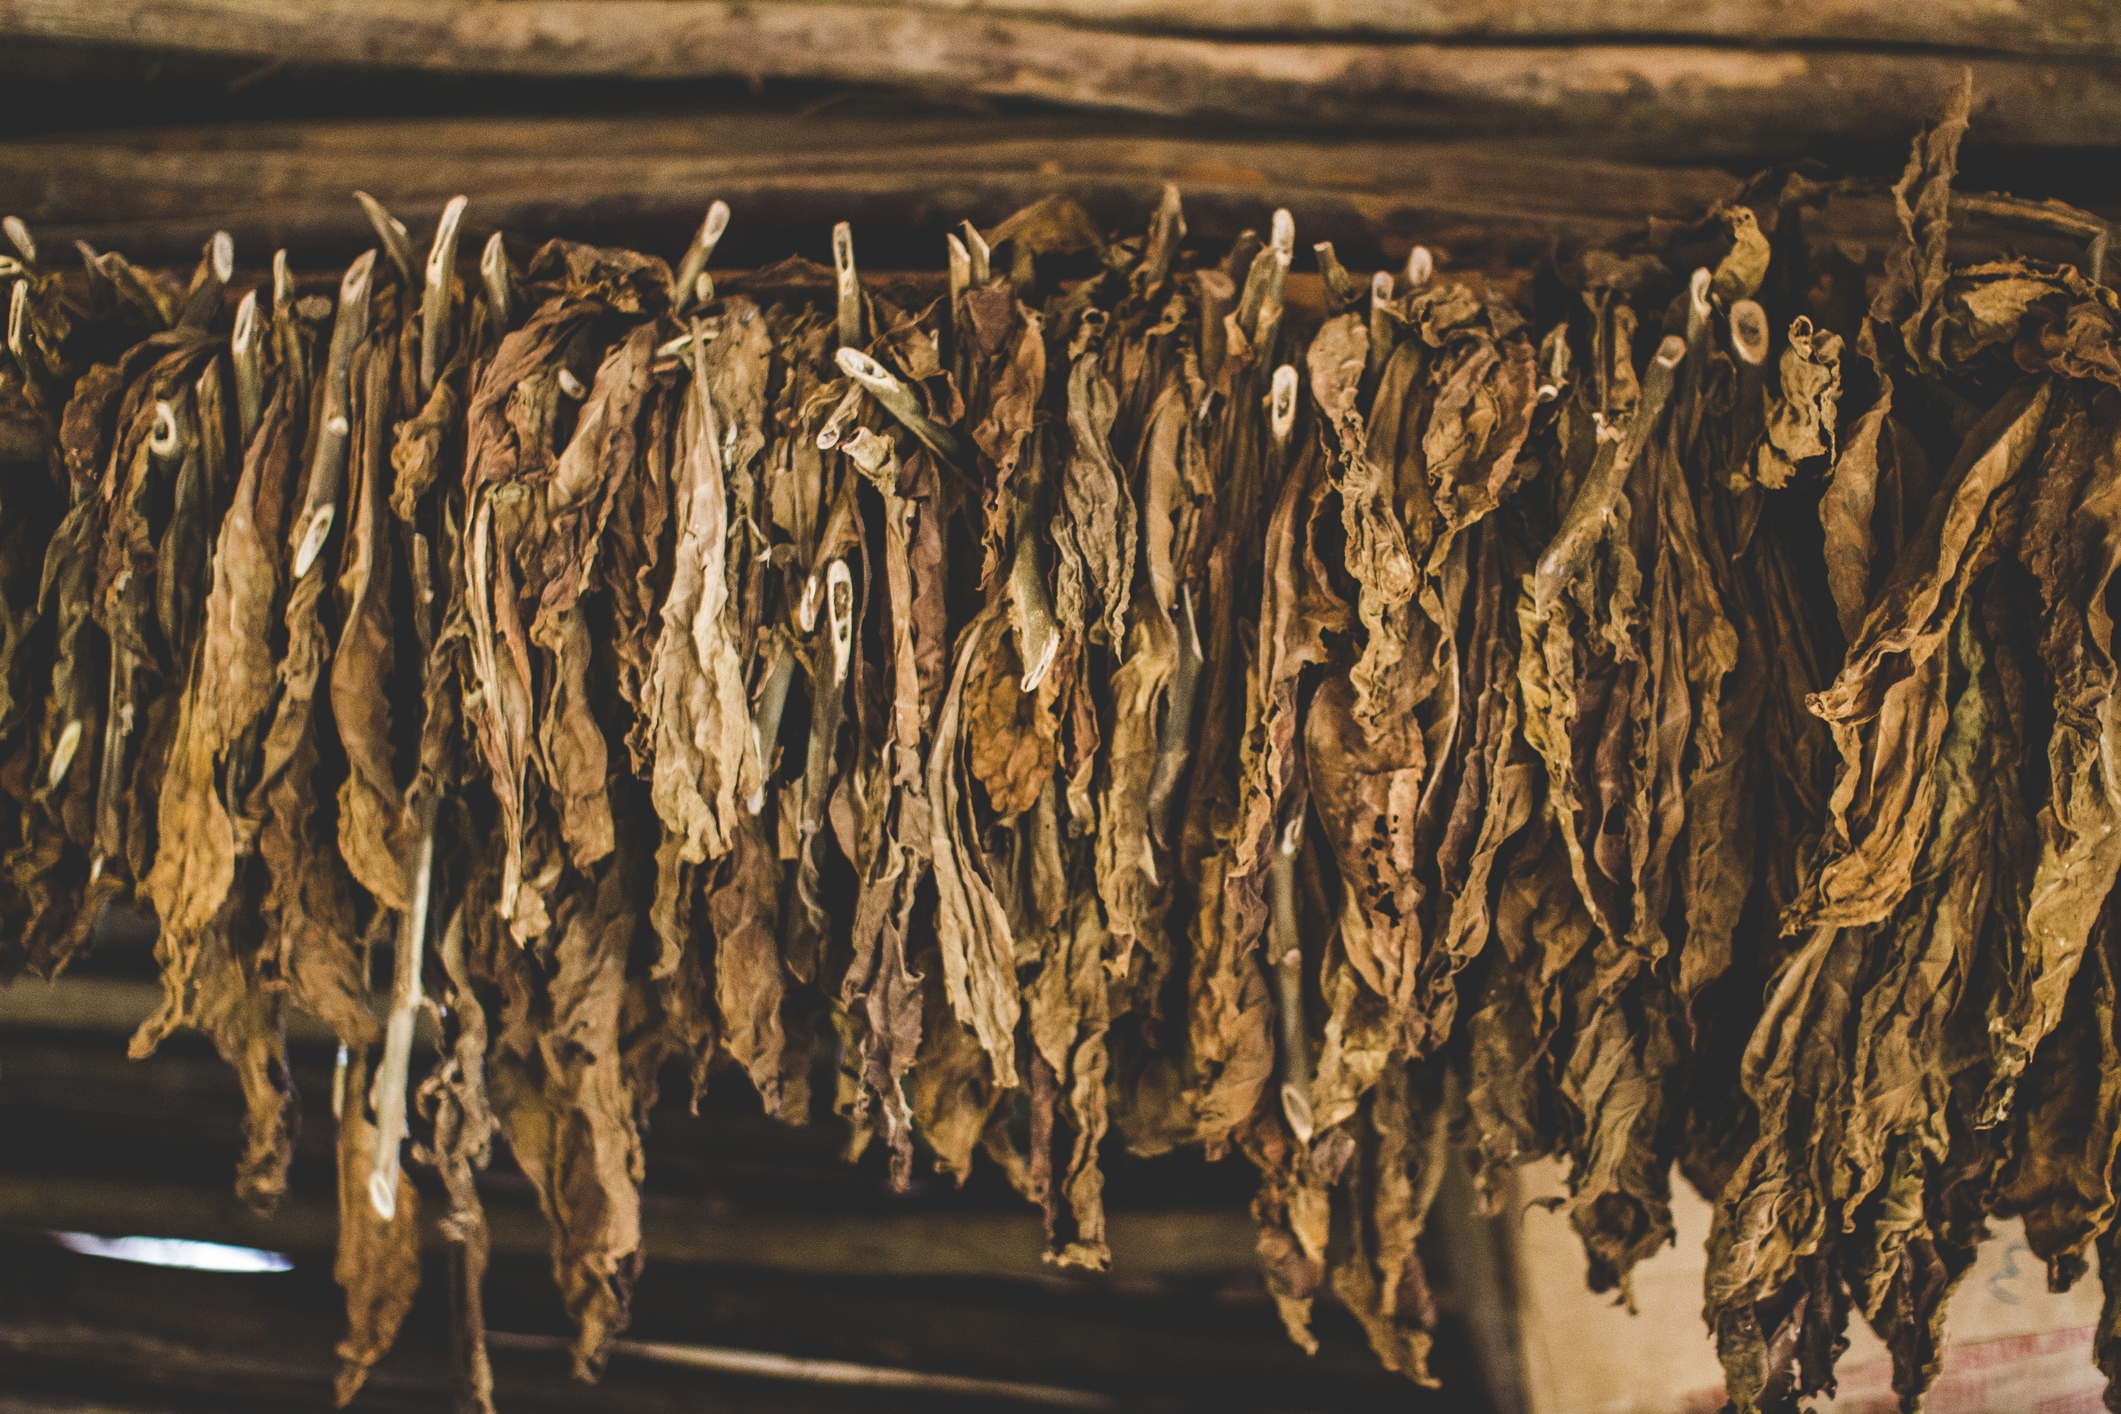 Tobacco leaves being dried at a farm in Viñales, Cuba. Here is where they process the leaves from being picked before heading to the factories to be rolled, into either cigars or cigarettes.